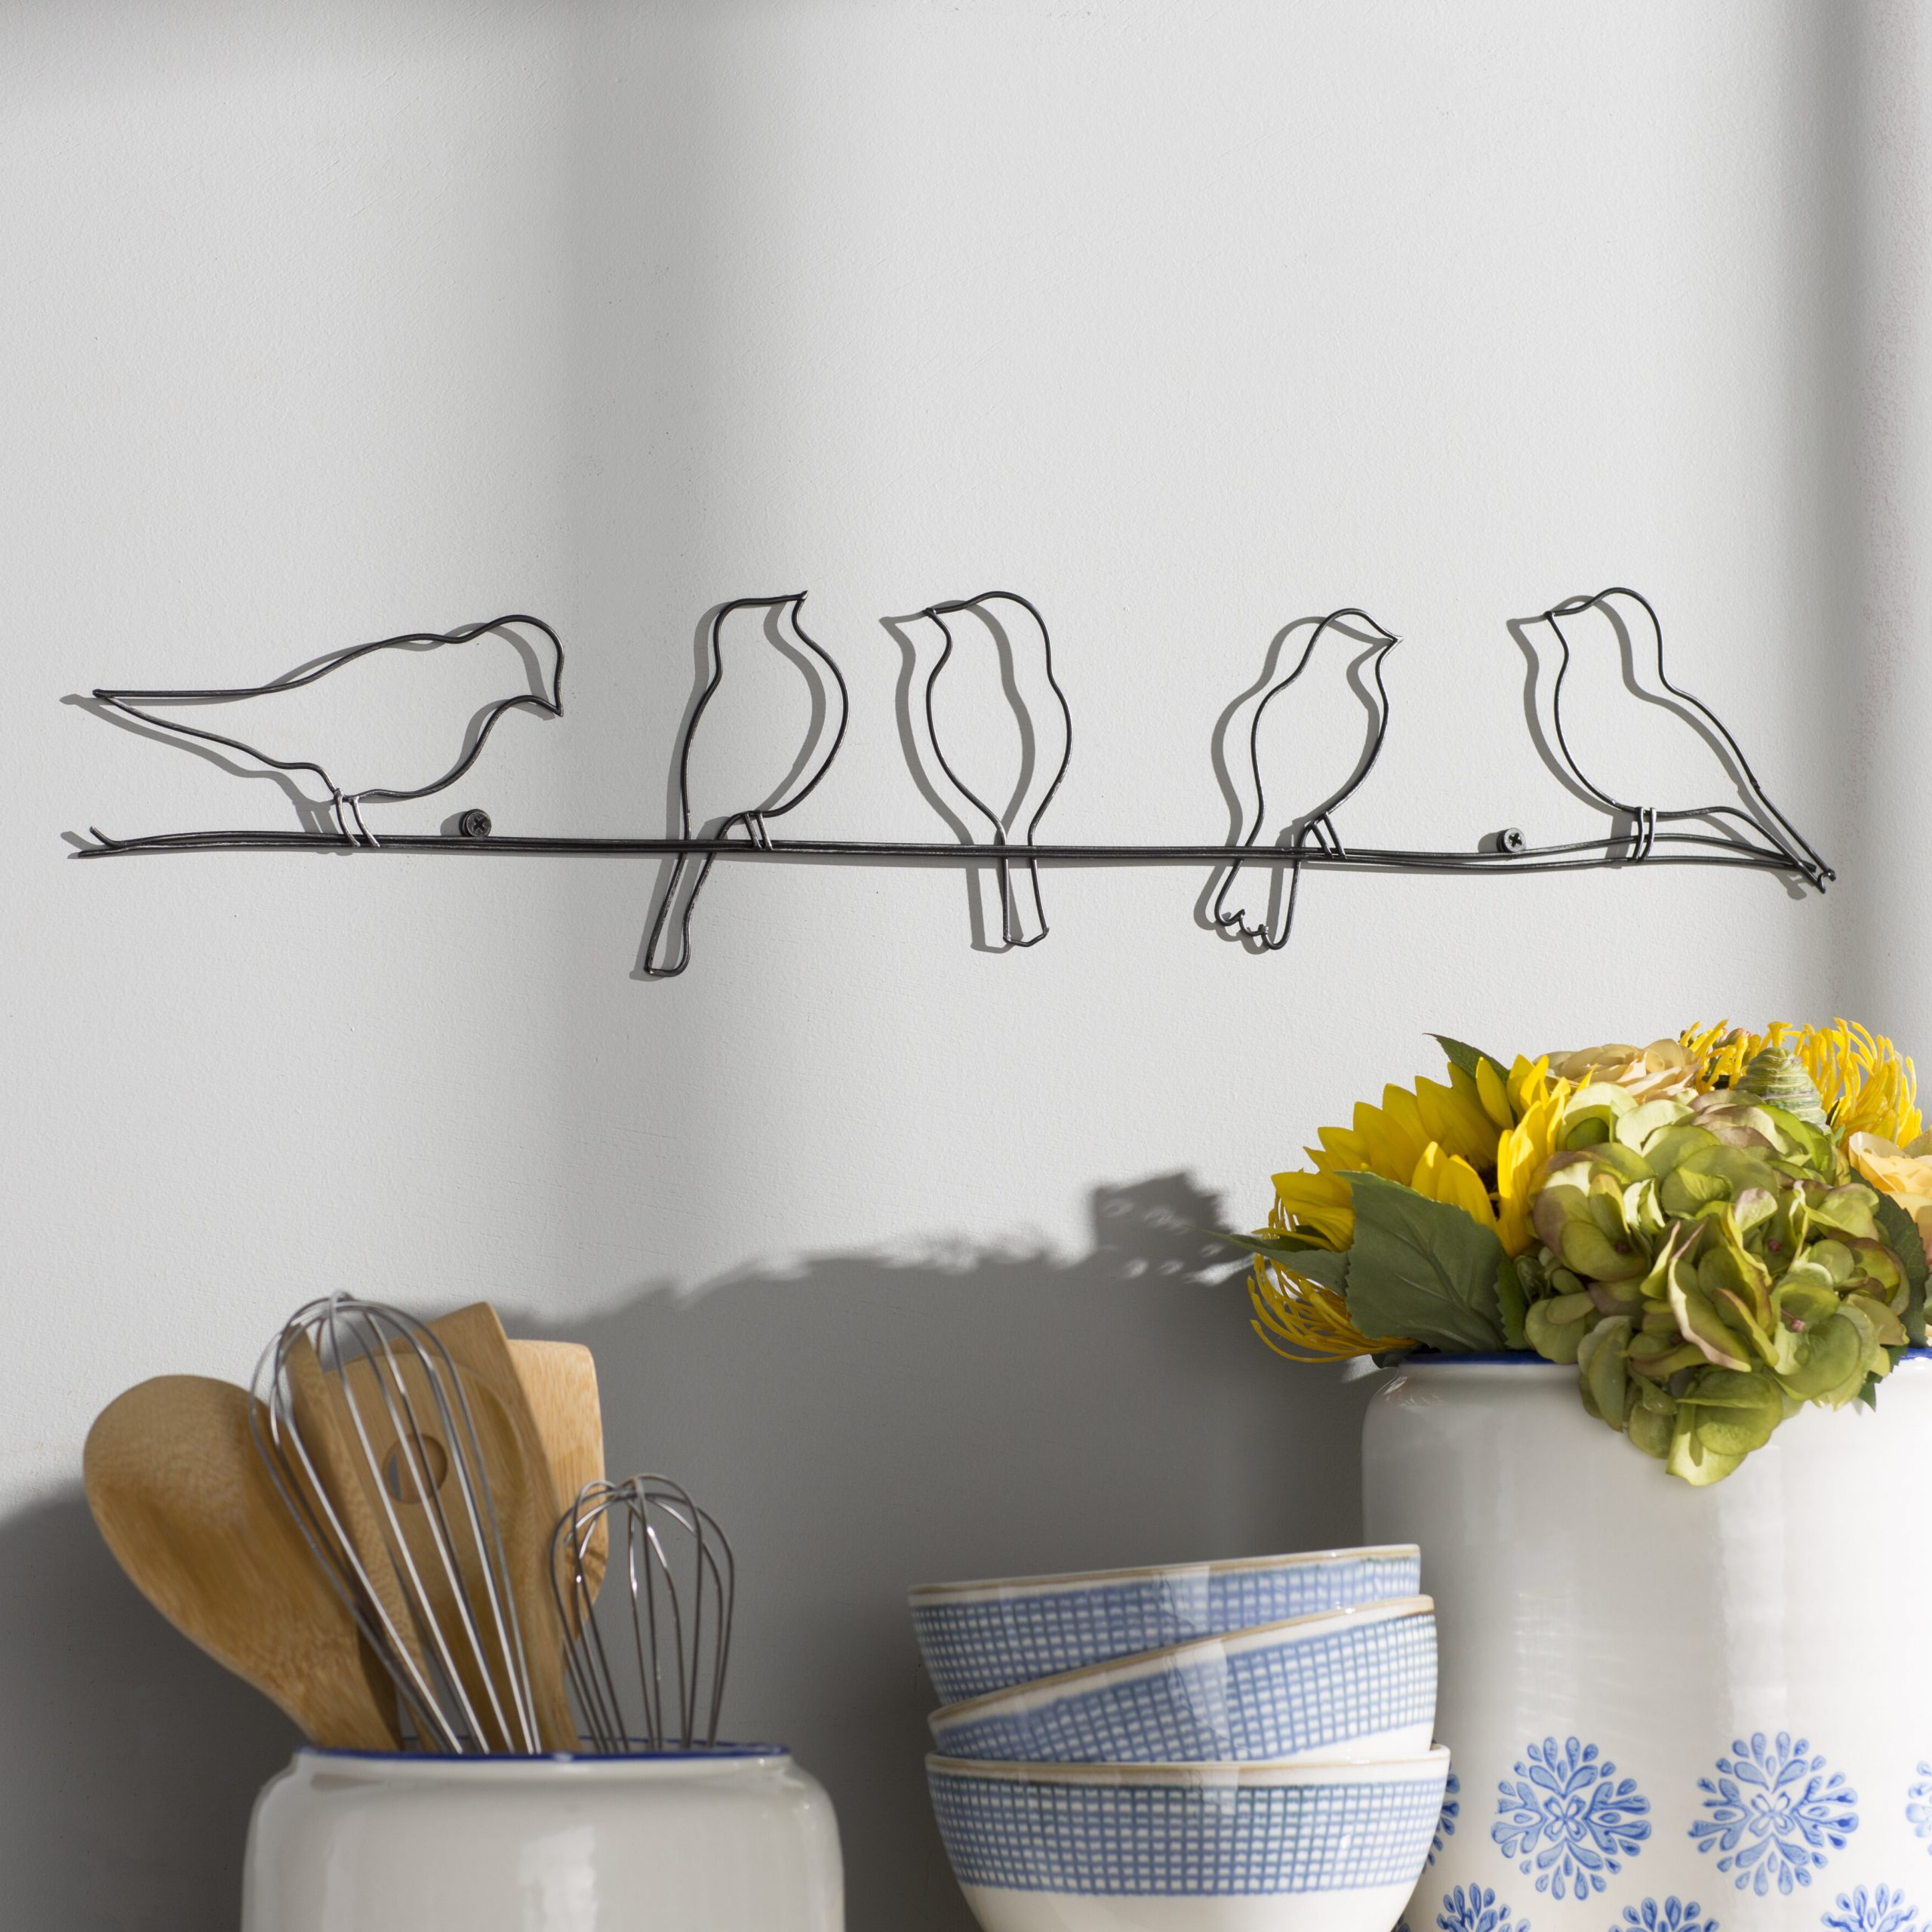 Birds On A Wire Wall Décor By Winston Porter Intended For Well Known Birds On A Wire Wall Decor (View 2 of 20)